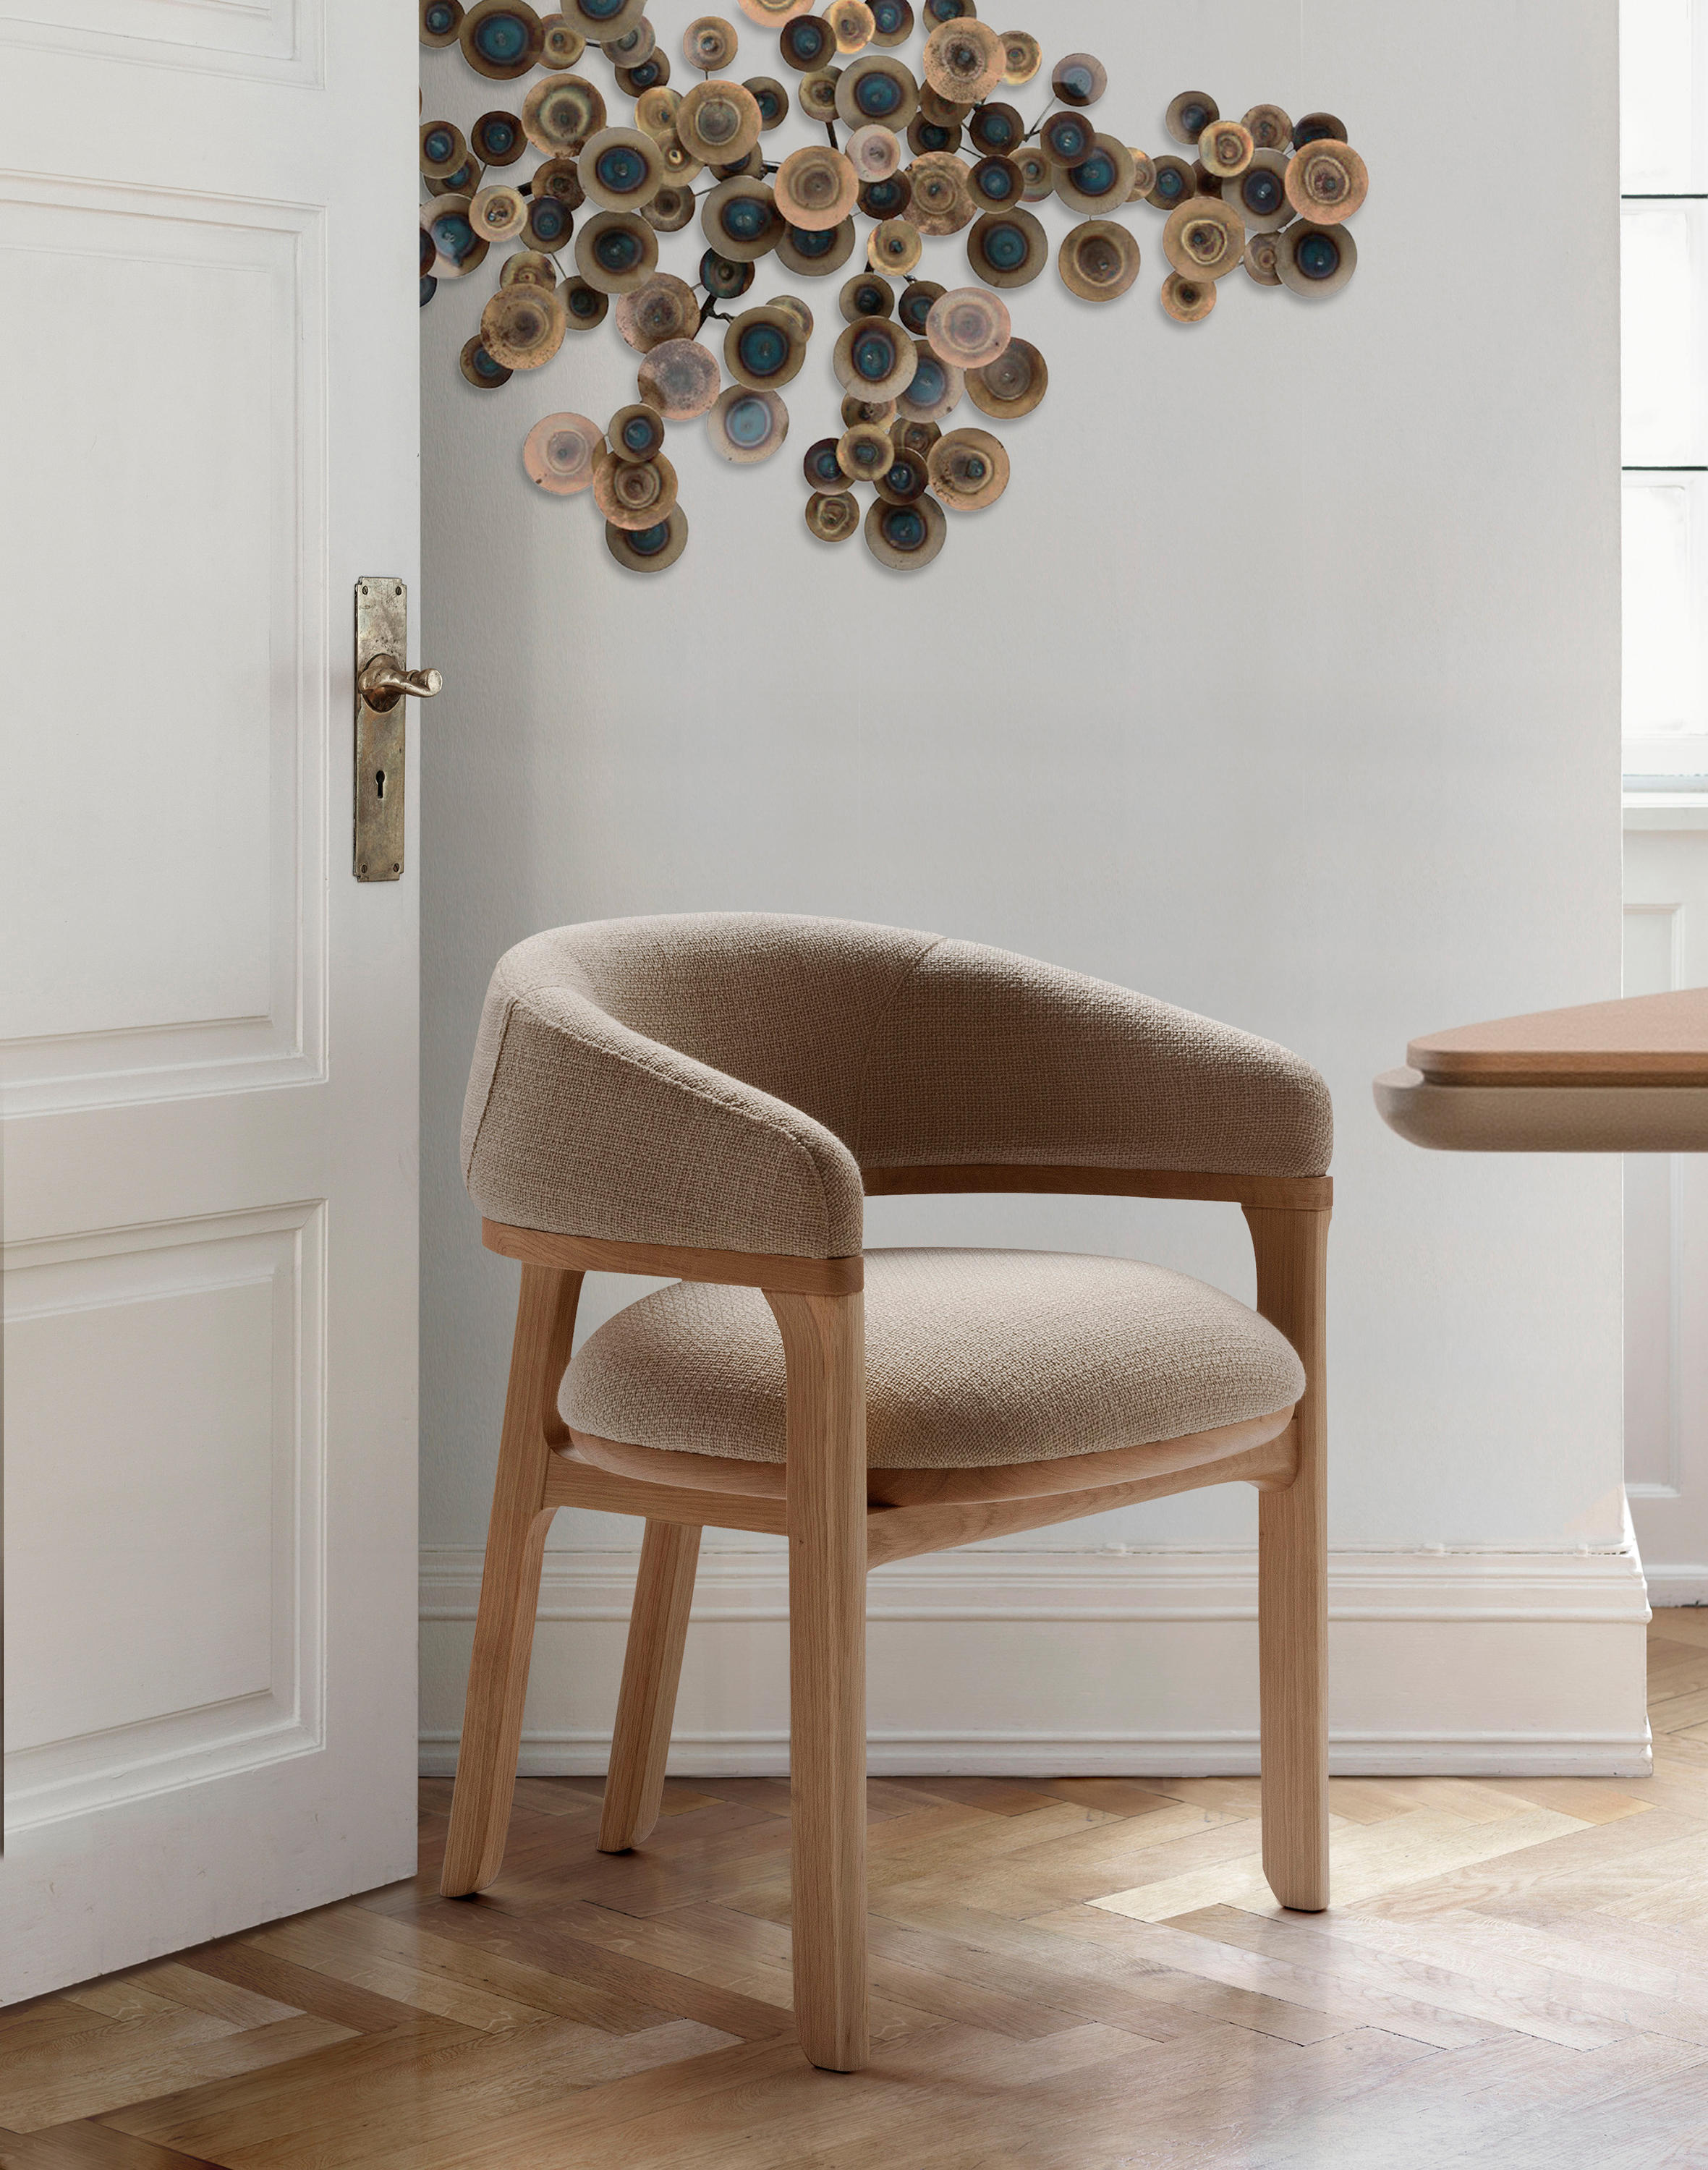 1290 chair by Tecni Nova · 1290 chair by Tecni Nova